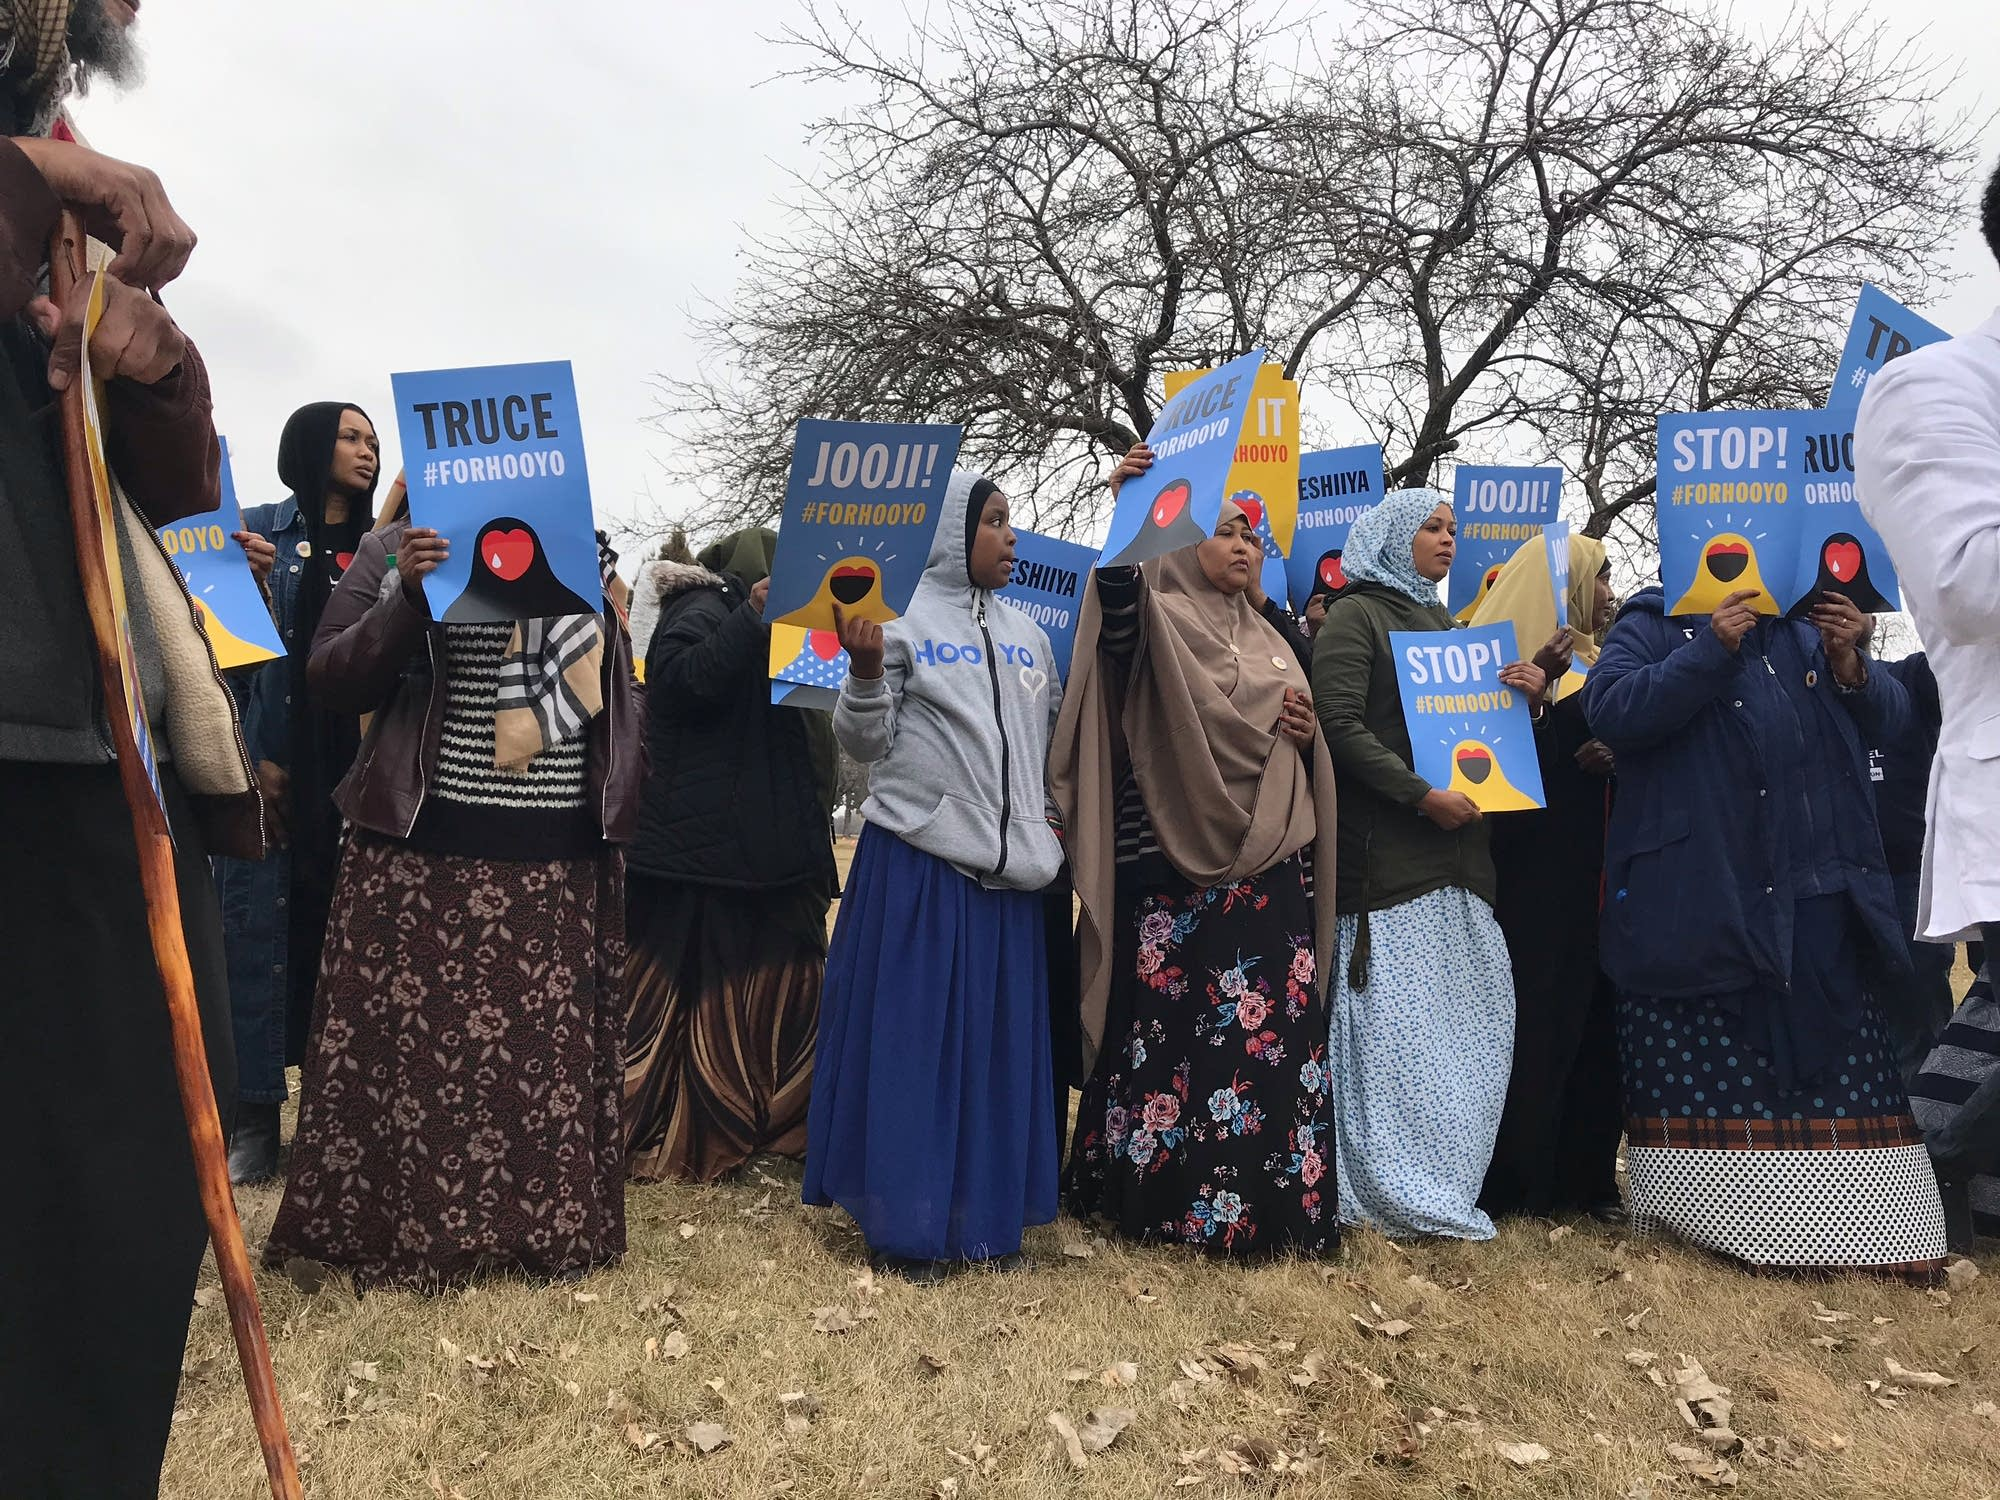 A group holds #ForHooyo signs.